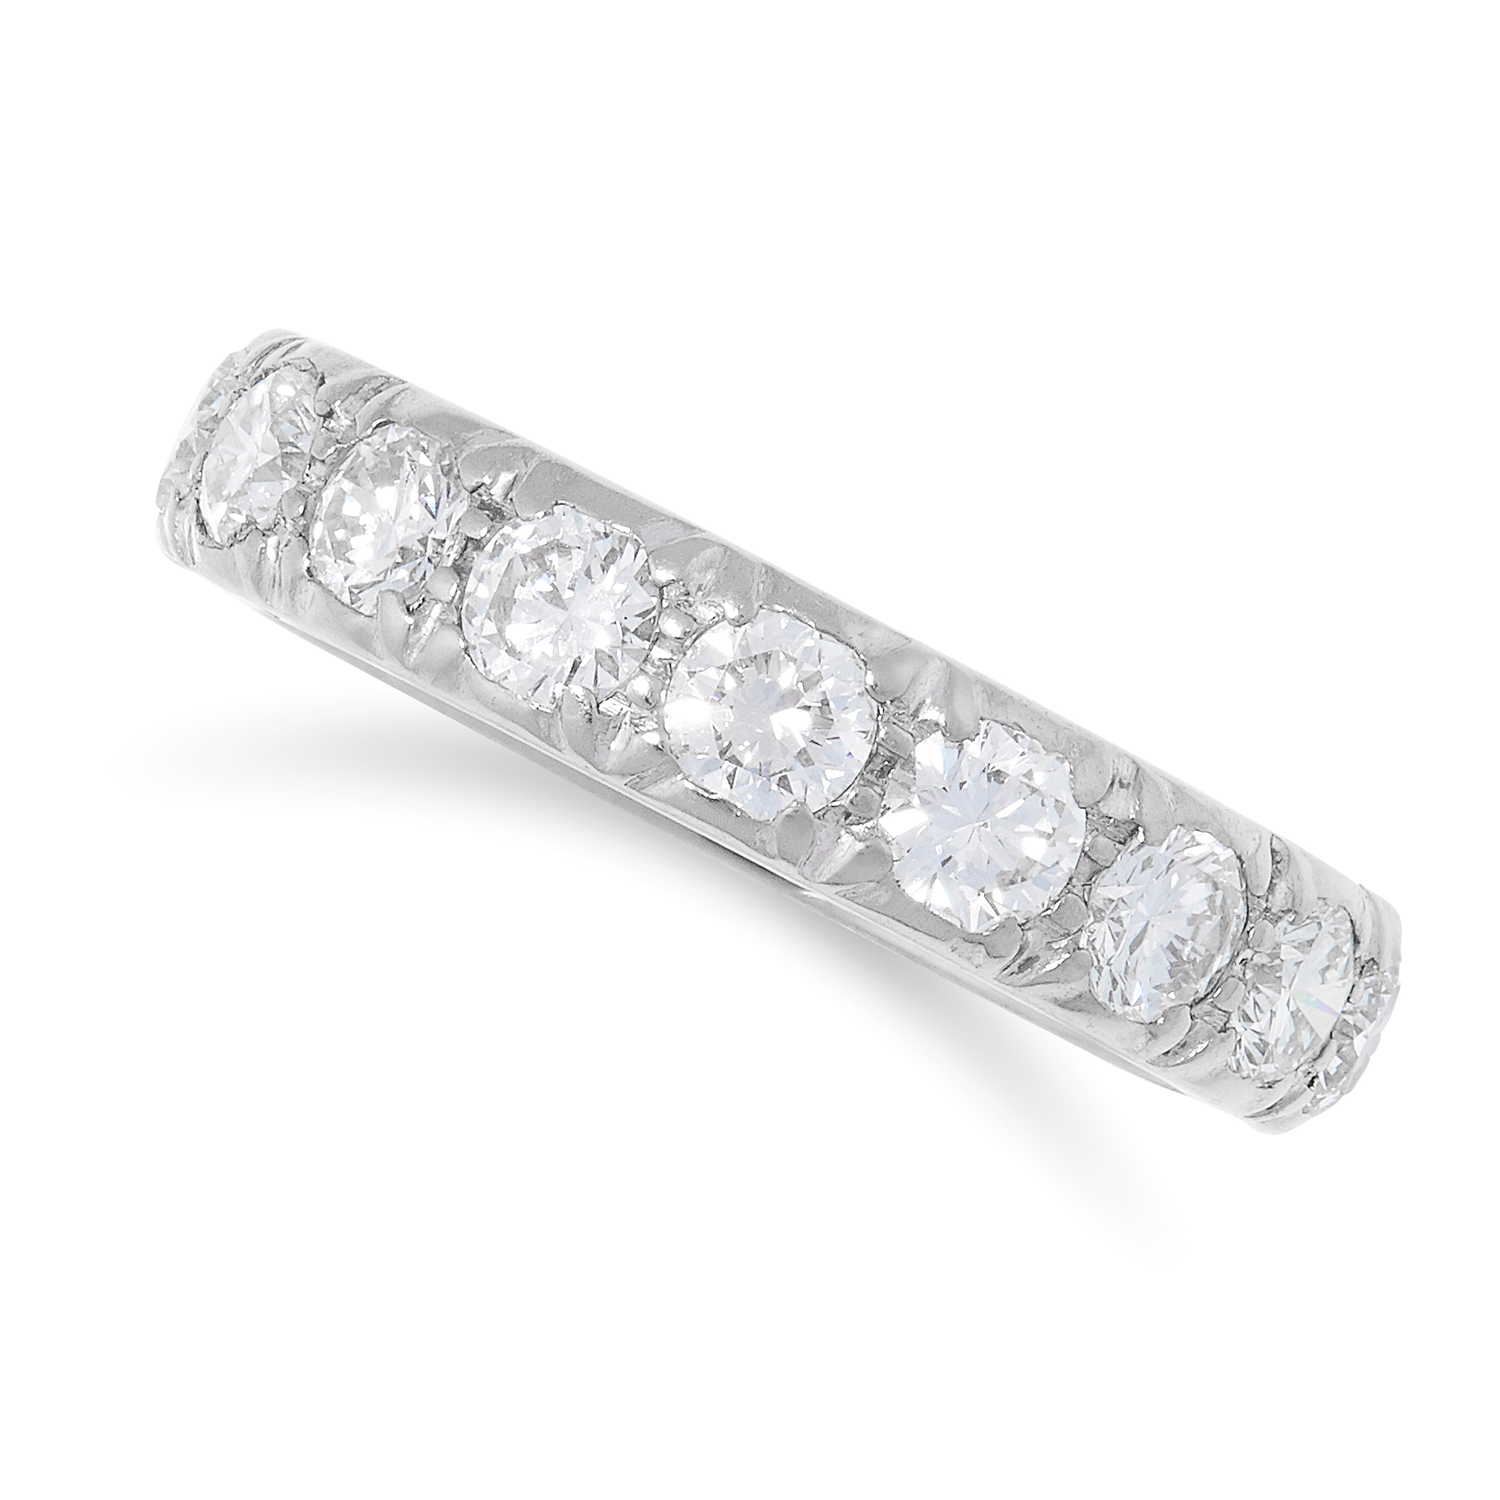 2.40 CARAT DIAMOND ETERNITY RING set with round cut diamonds totalling approximately 2.40 carats,